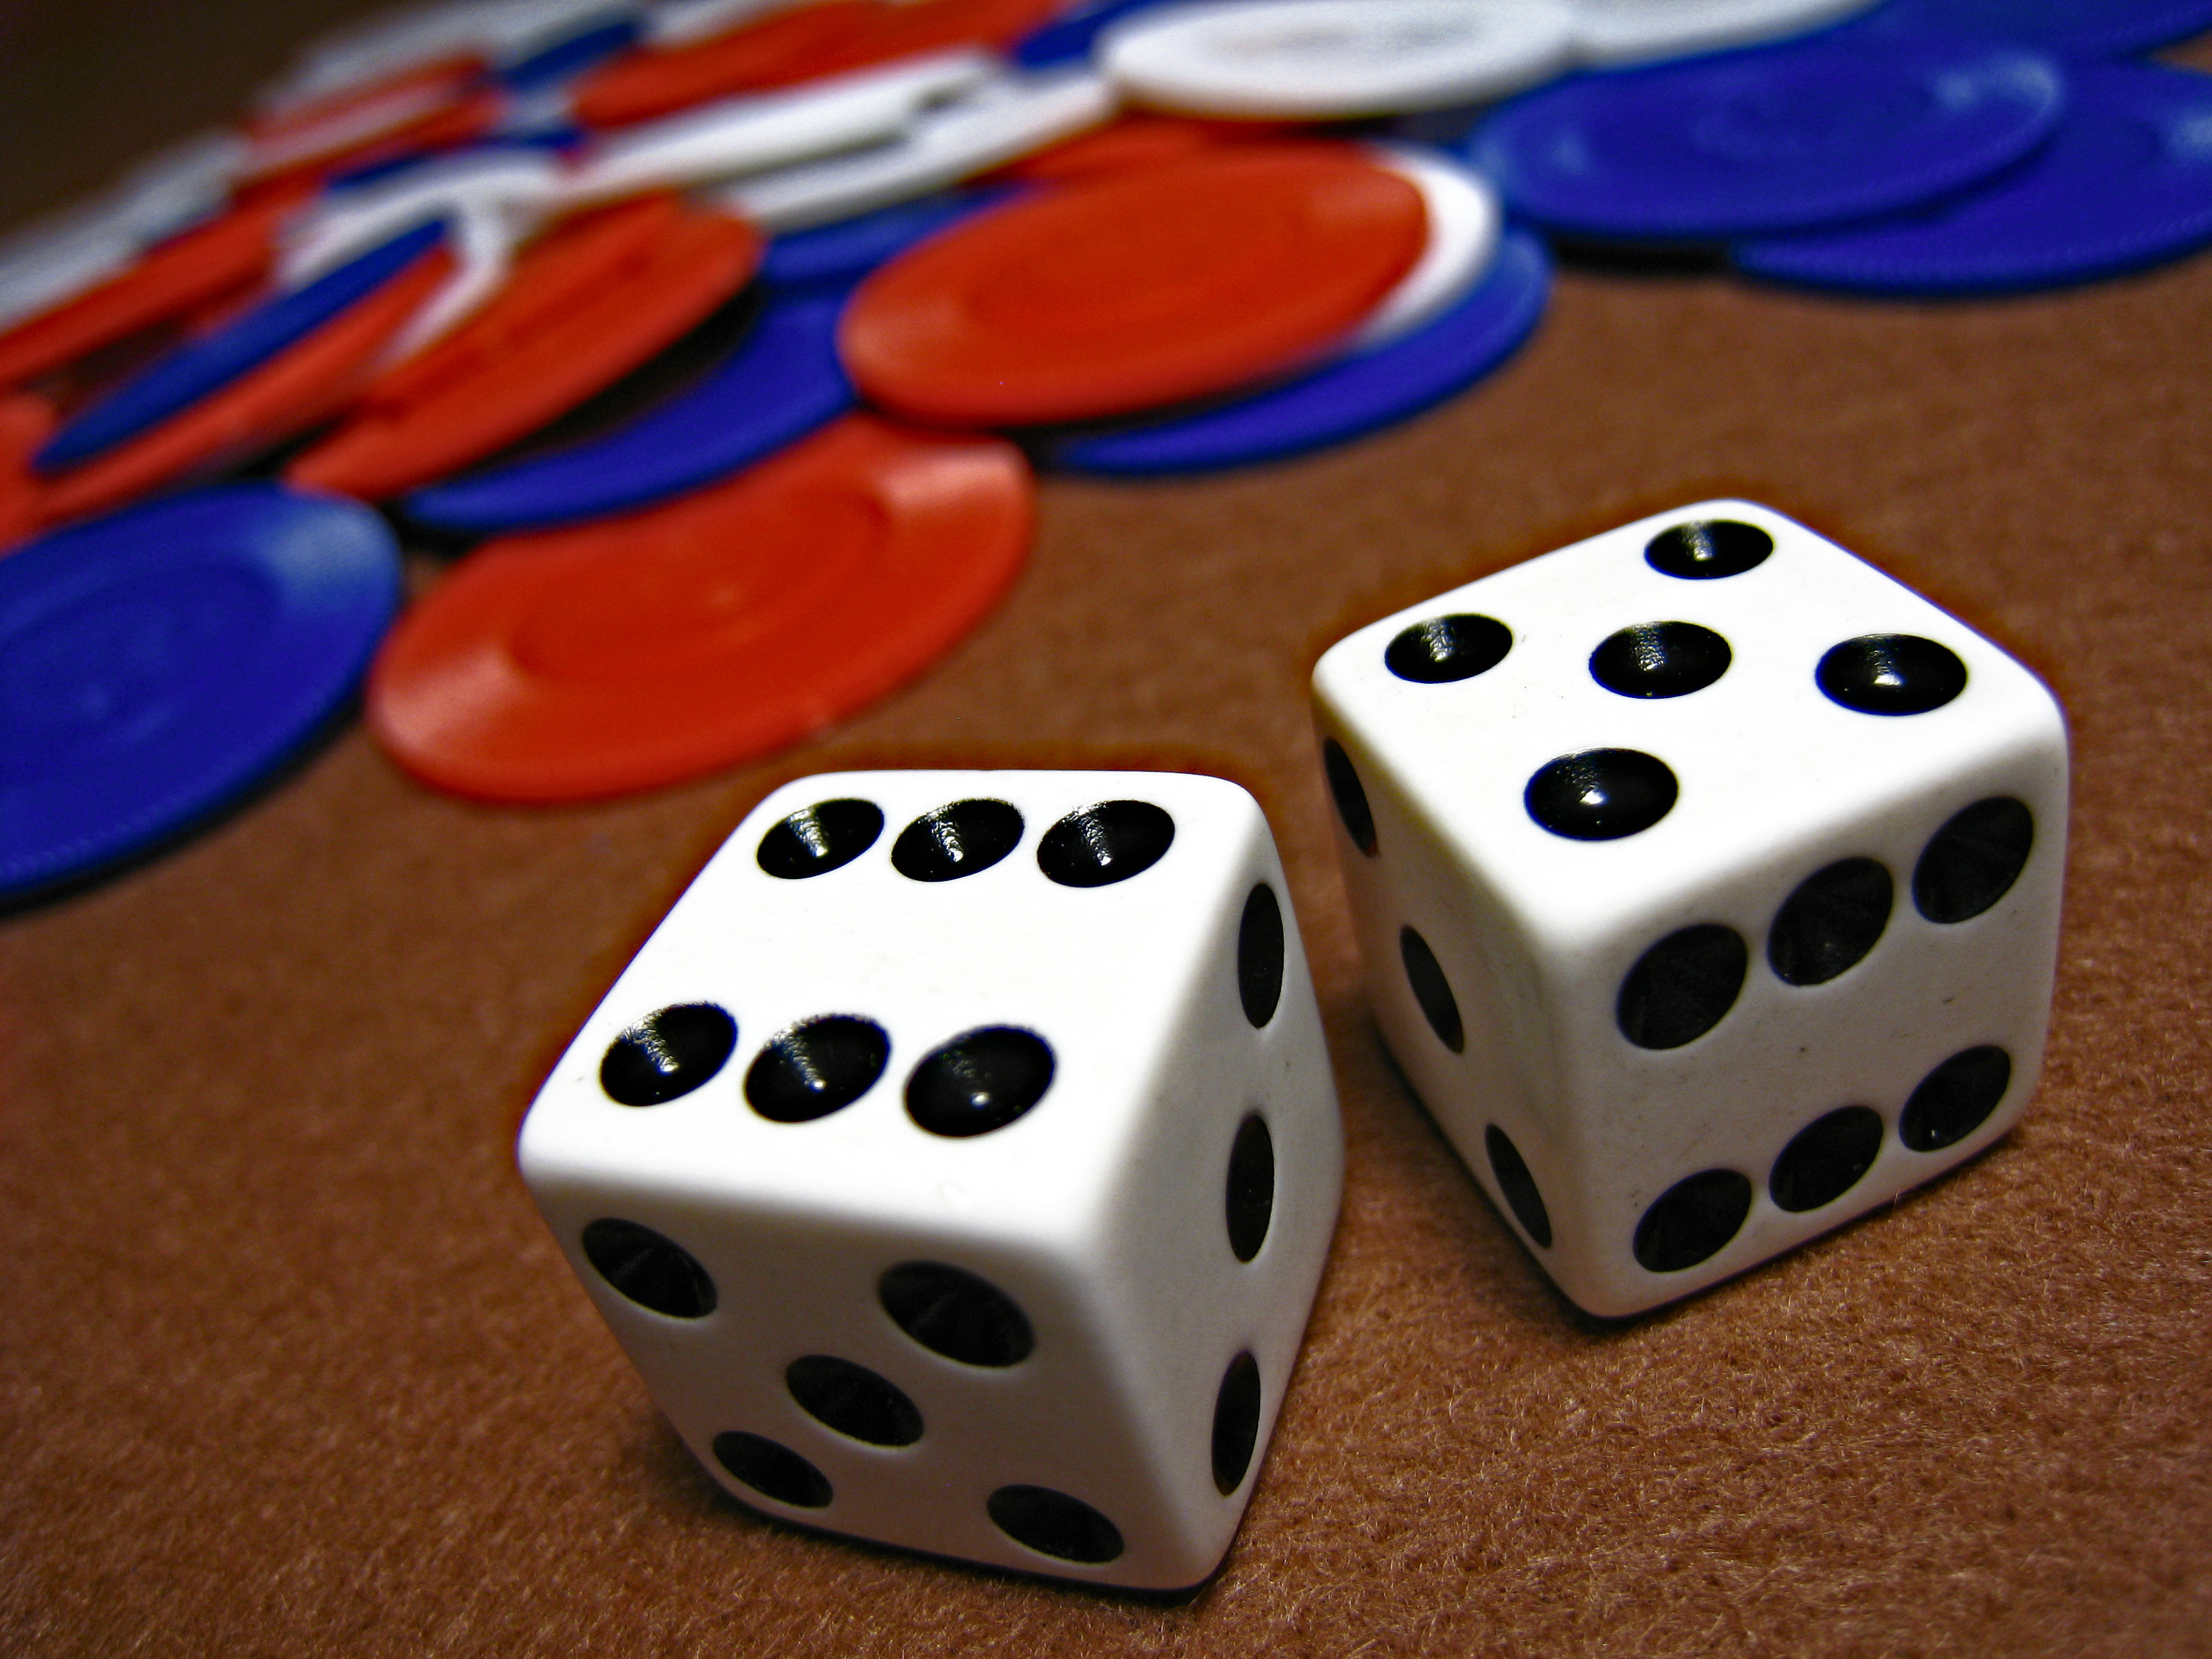 Dice and Poker Chips, Casino, Chips, Dice, Gambling, HQ Photo